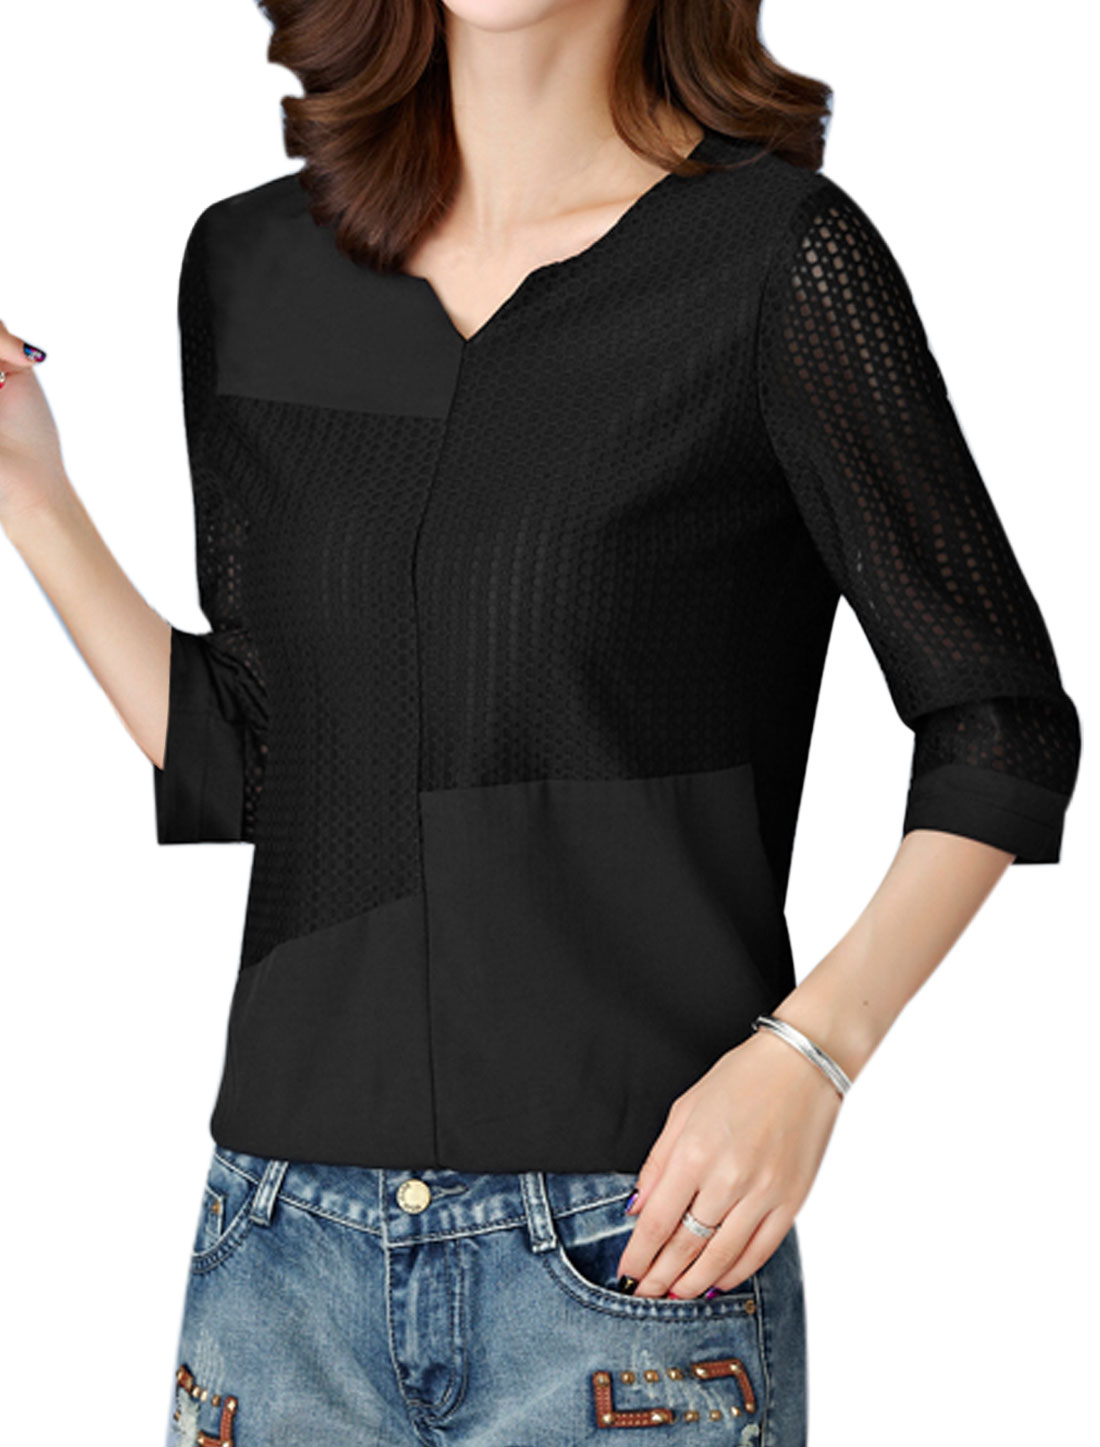 Women Split Neck 3/4 Sleeves Hollow Out Paneled Top Black M